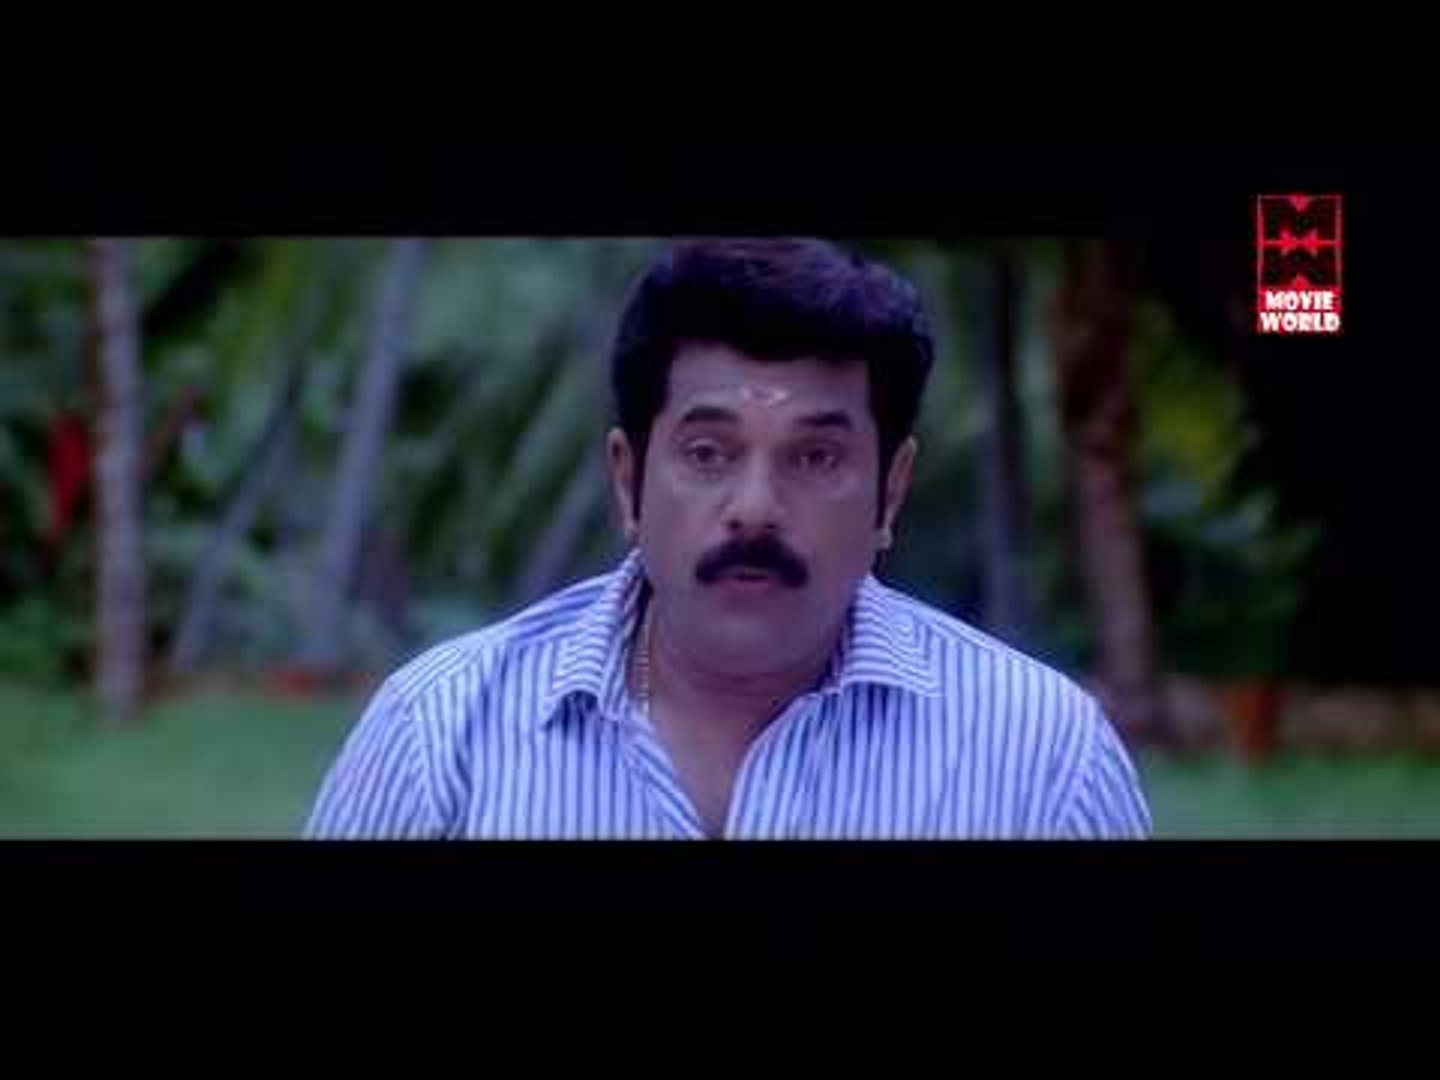 Tamil New Movies 2016 Full Movie # Tamil Full Movie 2016 New Releases # Tamil  Movie 18+ New 2016